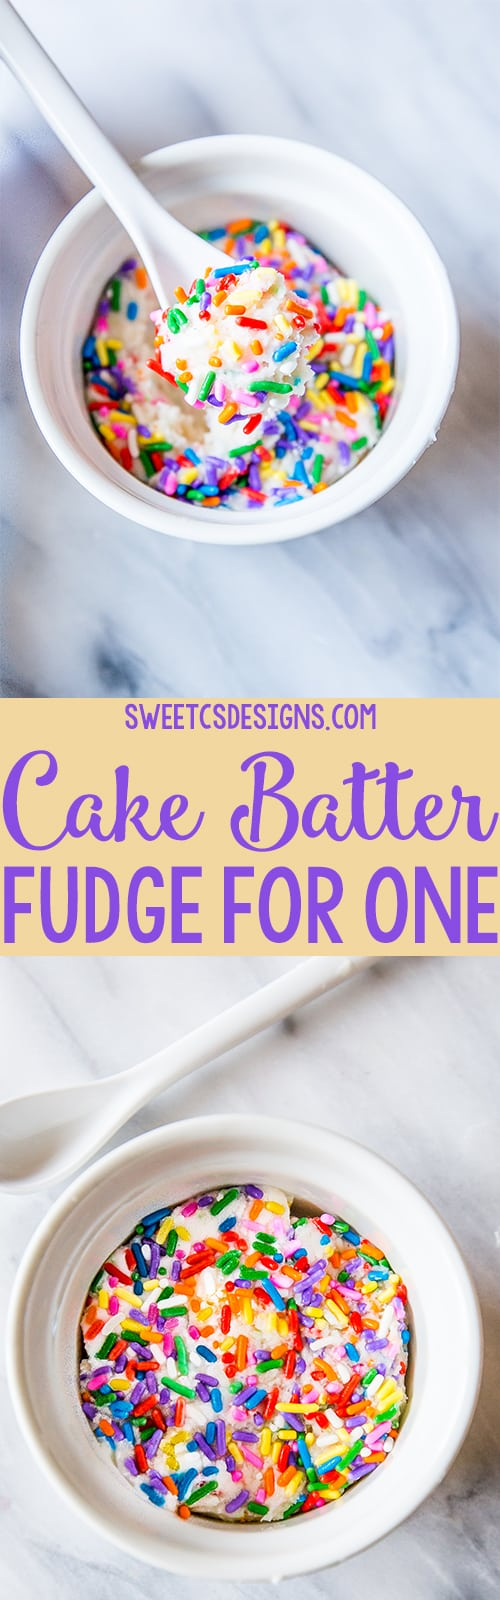 Cake batter fudge for one- get in my belly!